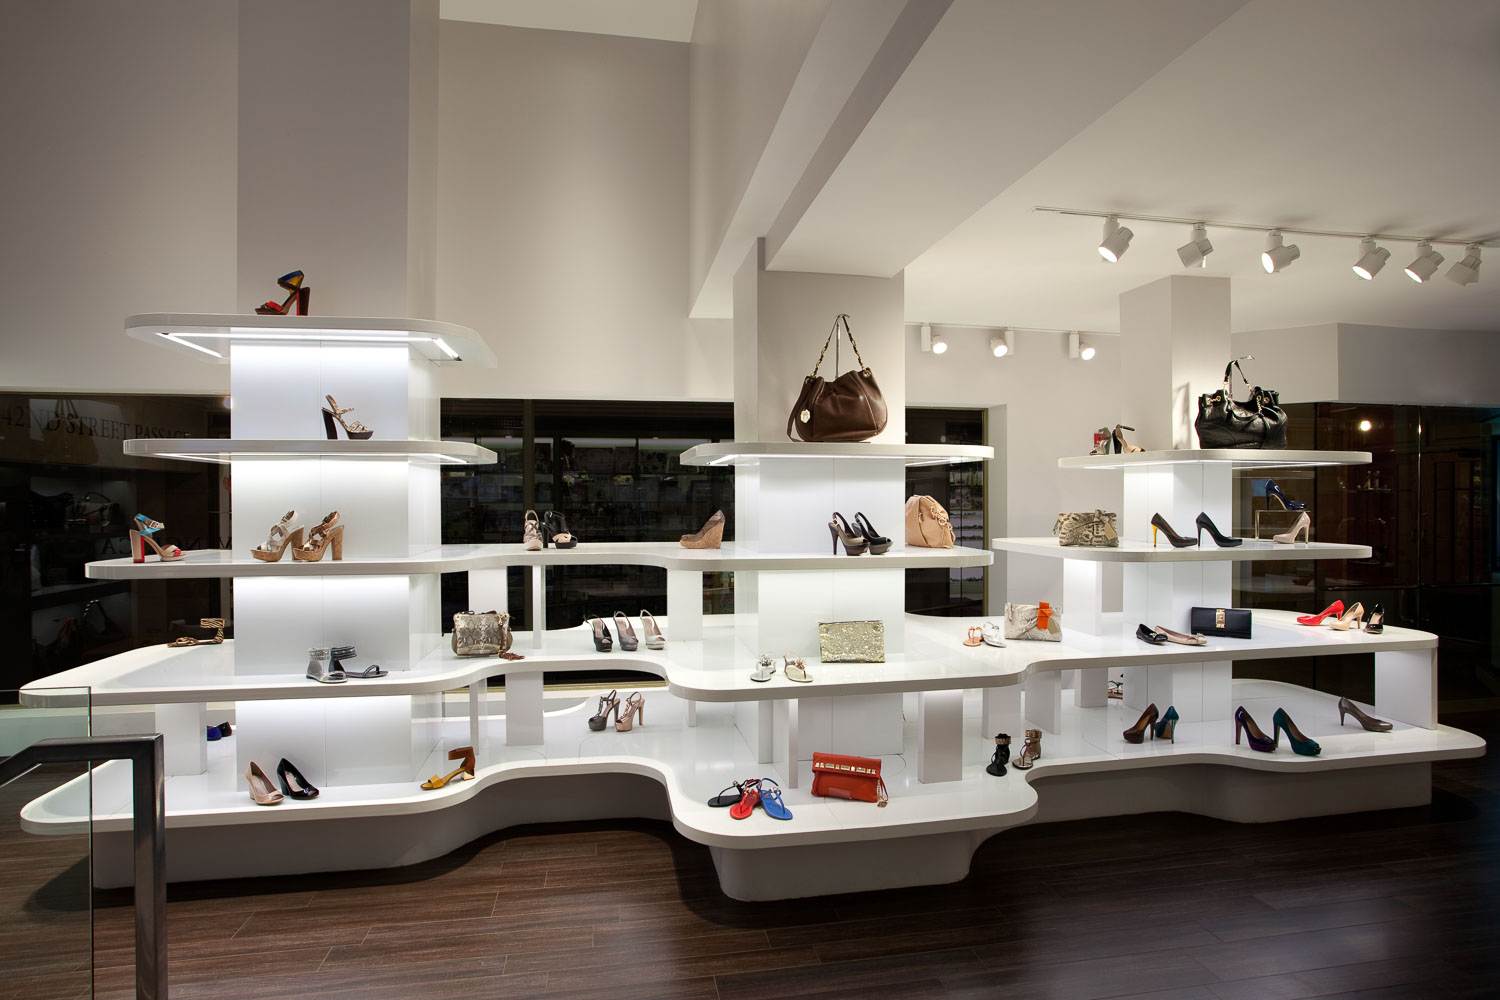 Vince Camuto Grand Central Terminal Retail Store Design 06.jpg